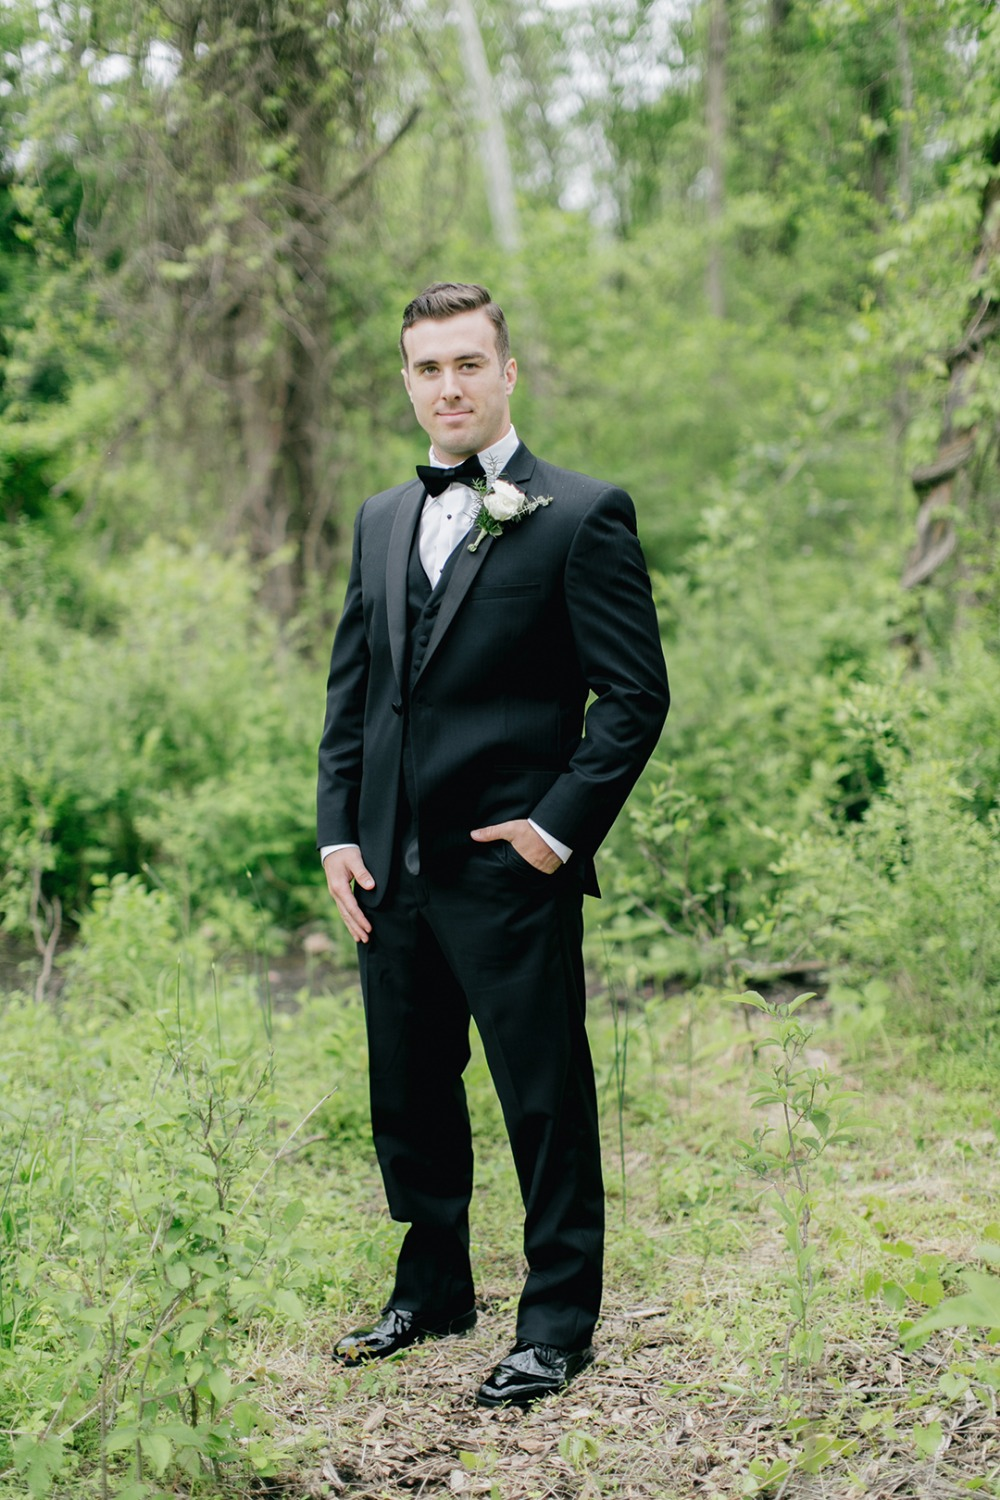 Handsome groom look